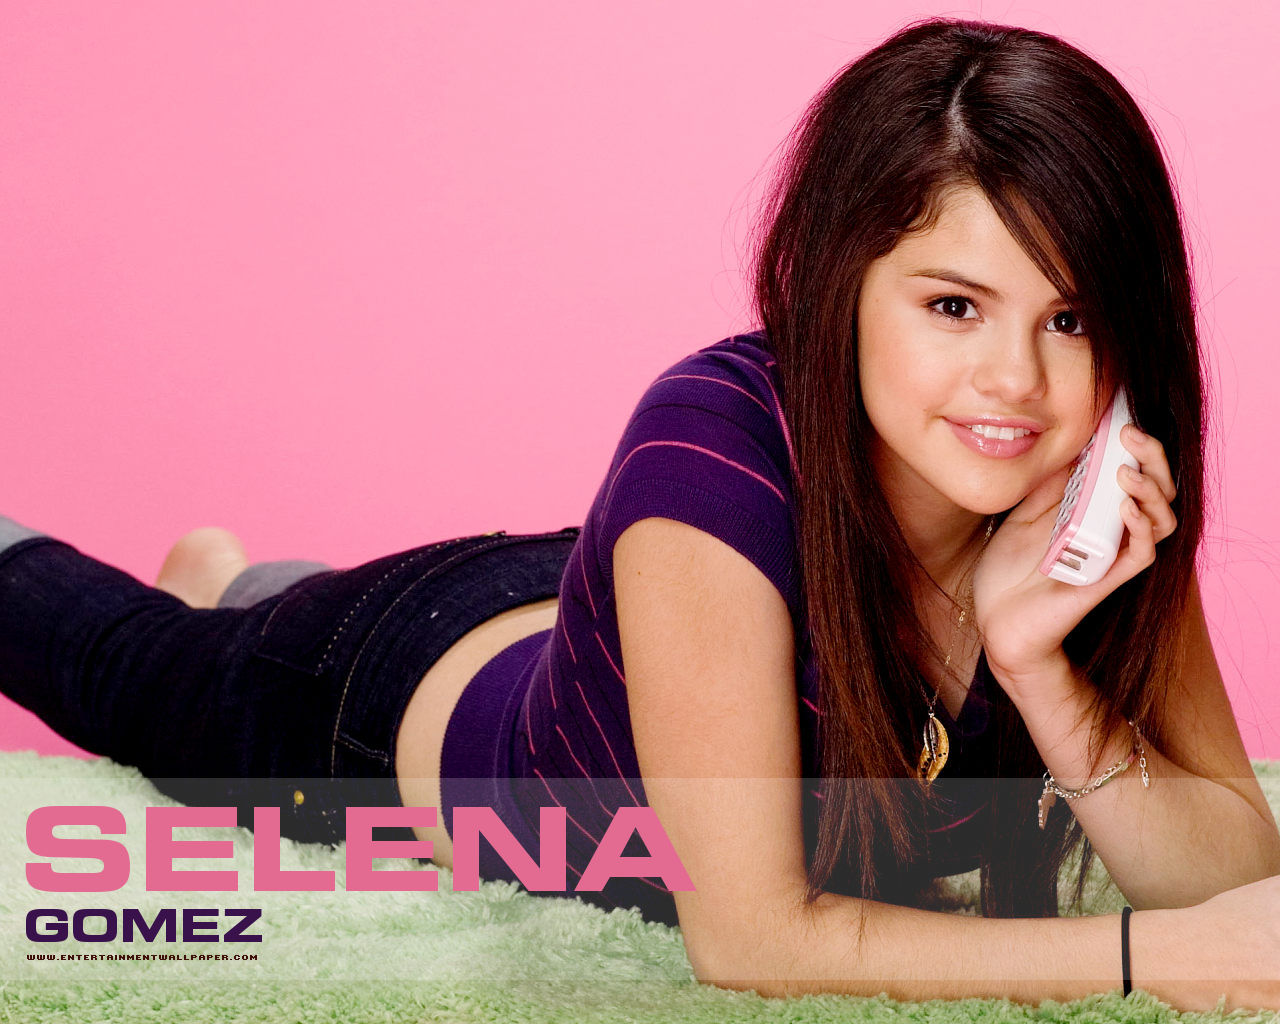 Wallpapers De Selena Gomez Wallpapers De Selena Gomez Iconos